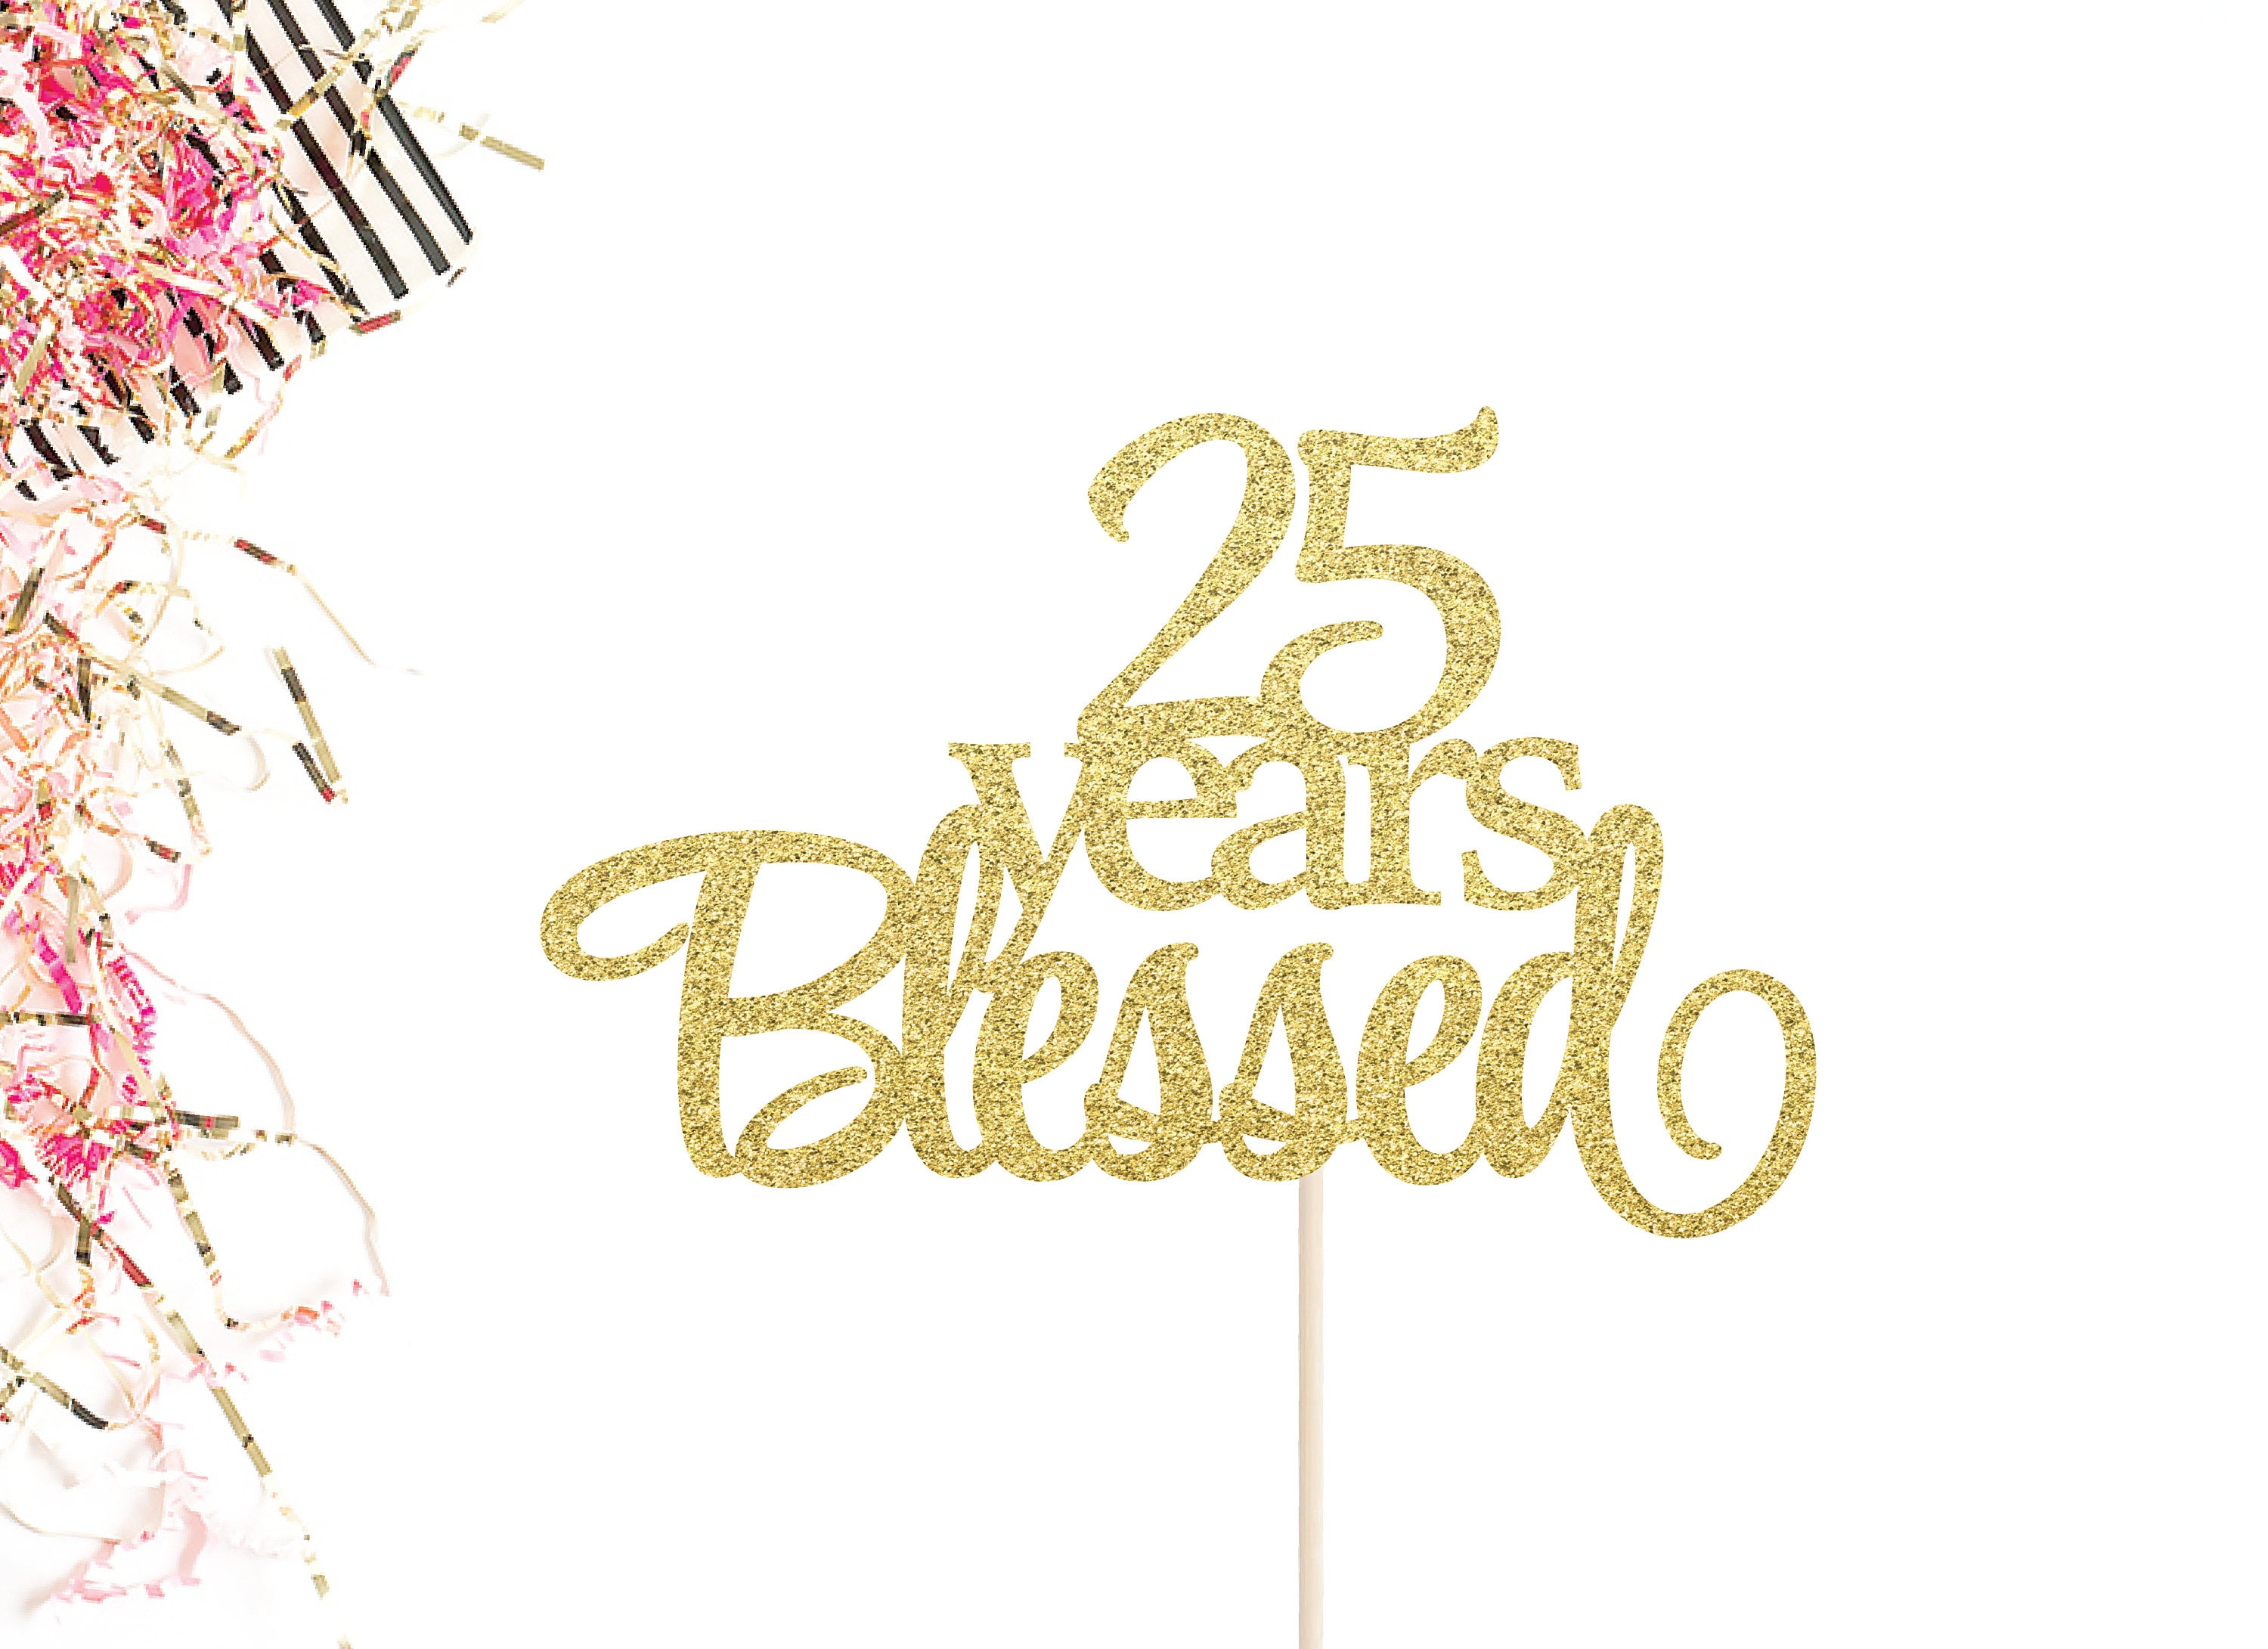 25 Years Blessed Cake Topper 25th Anniversary Cake Topper | Etsy